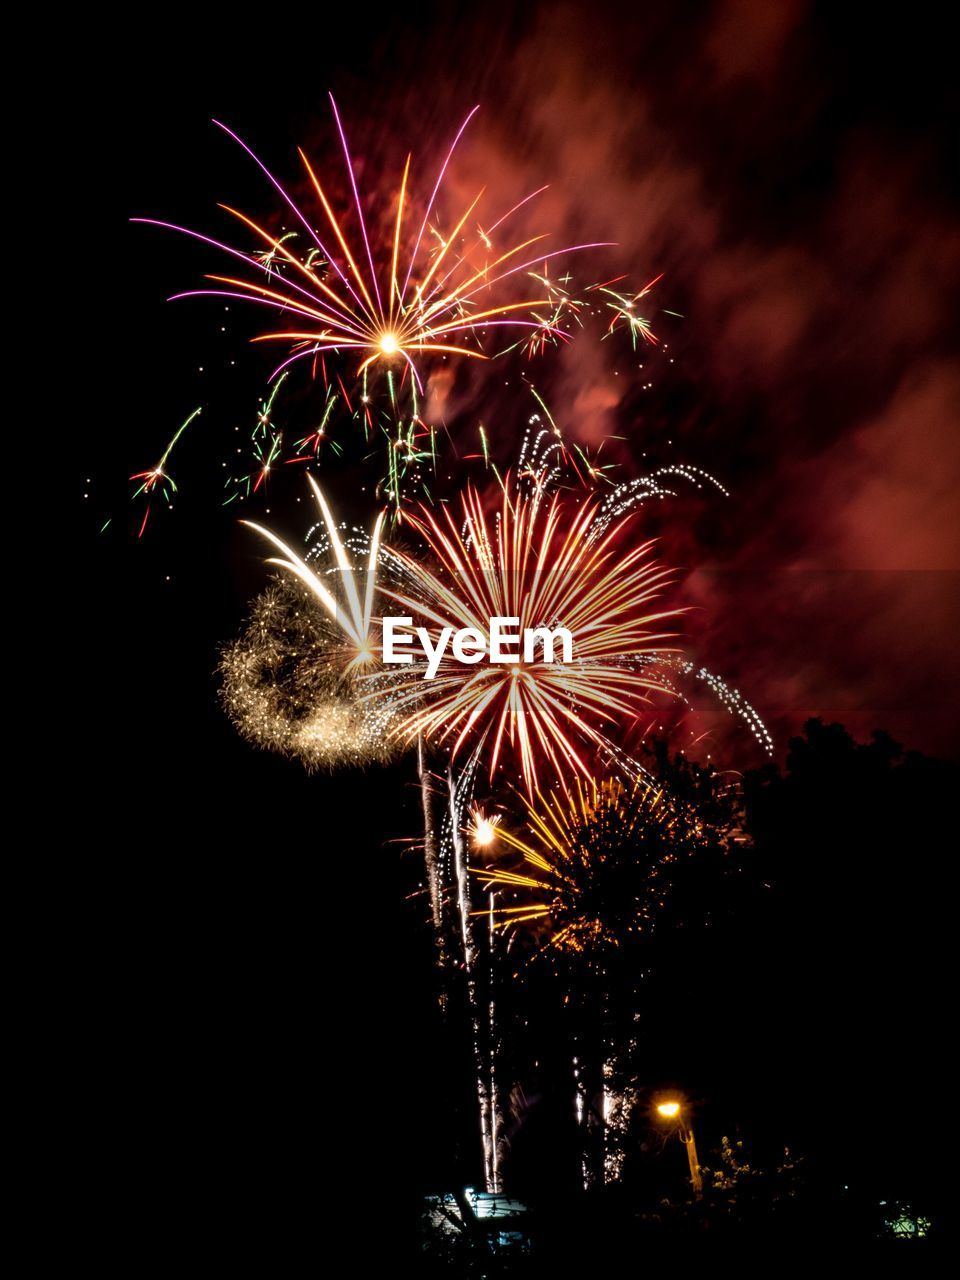 illuminated, night, firework, motion, celebration, firework display, arts culture and entertainment, event, sky, exploding, glowing, long exposure, firework - man made object, low angle view, nature, light, no people, blurred motion, multi colored, outdoors, sparks